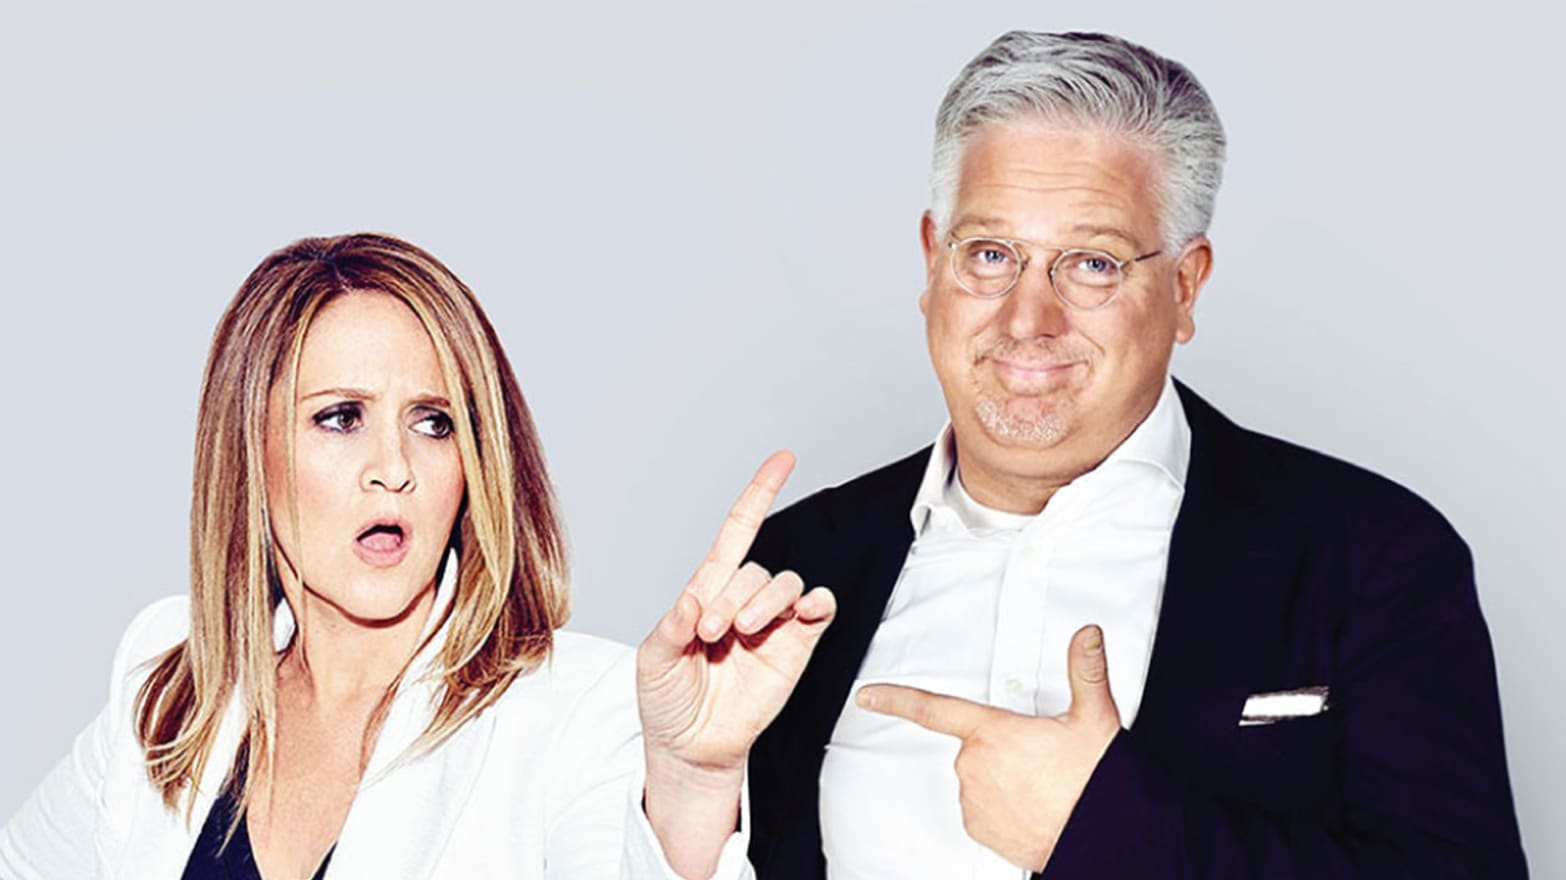 Christmas Sweater By Glenn Beck.Samantha Bee And Glenn Beck Unite Over Trump It S All Of